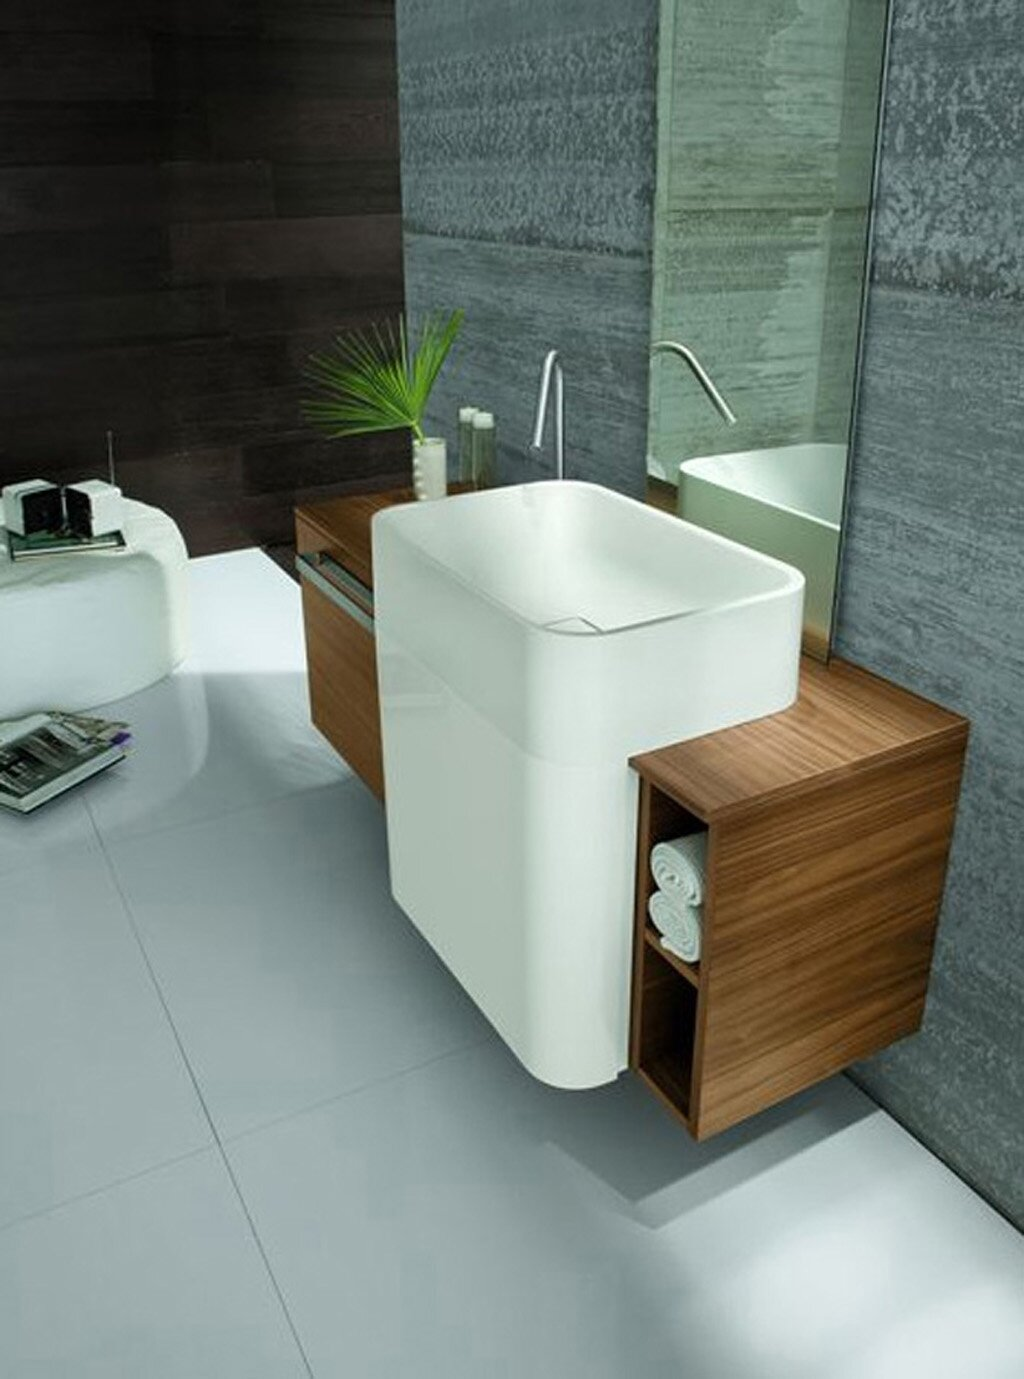 Top 15 bathroom sink designs and models mostbeautifulthings for Small sinks for bathrooms